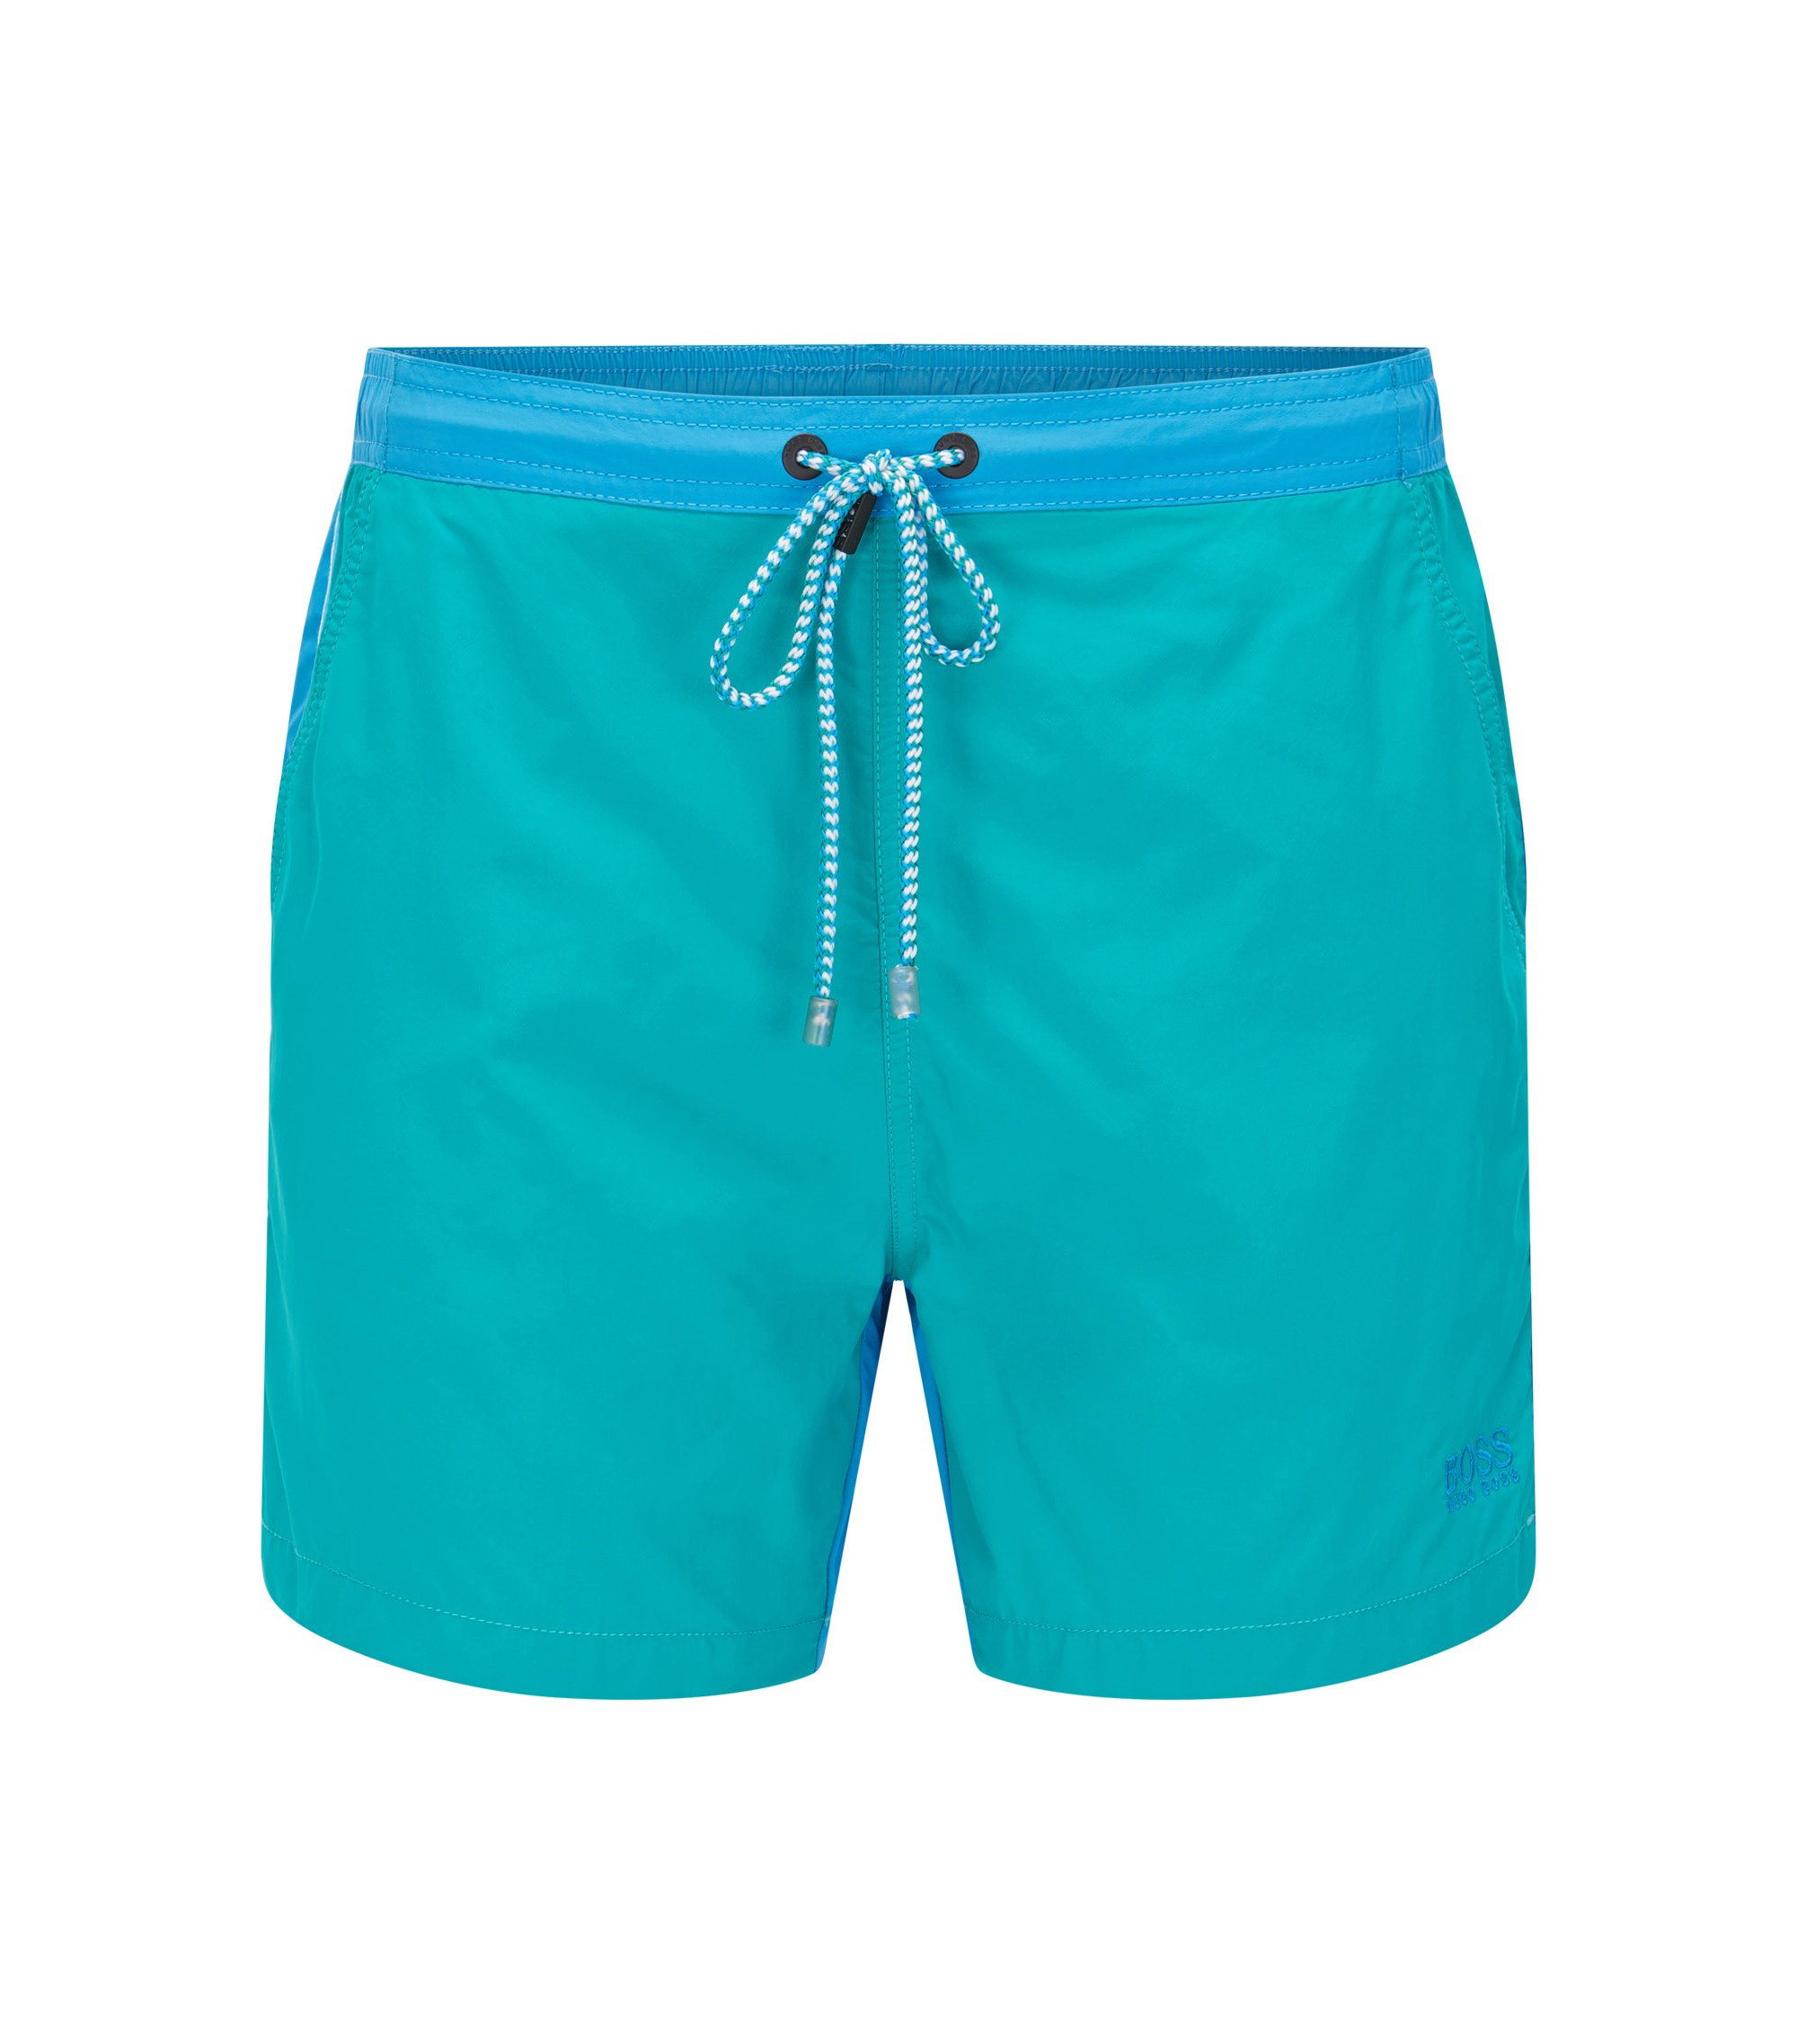 Quick Dry Patterned Swim Trunk | Snapper, Open Blue